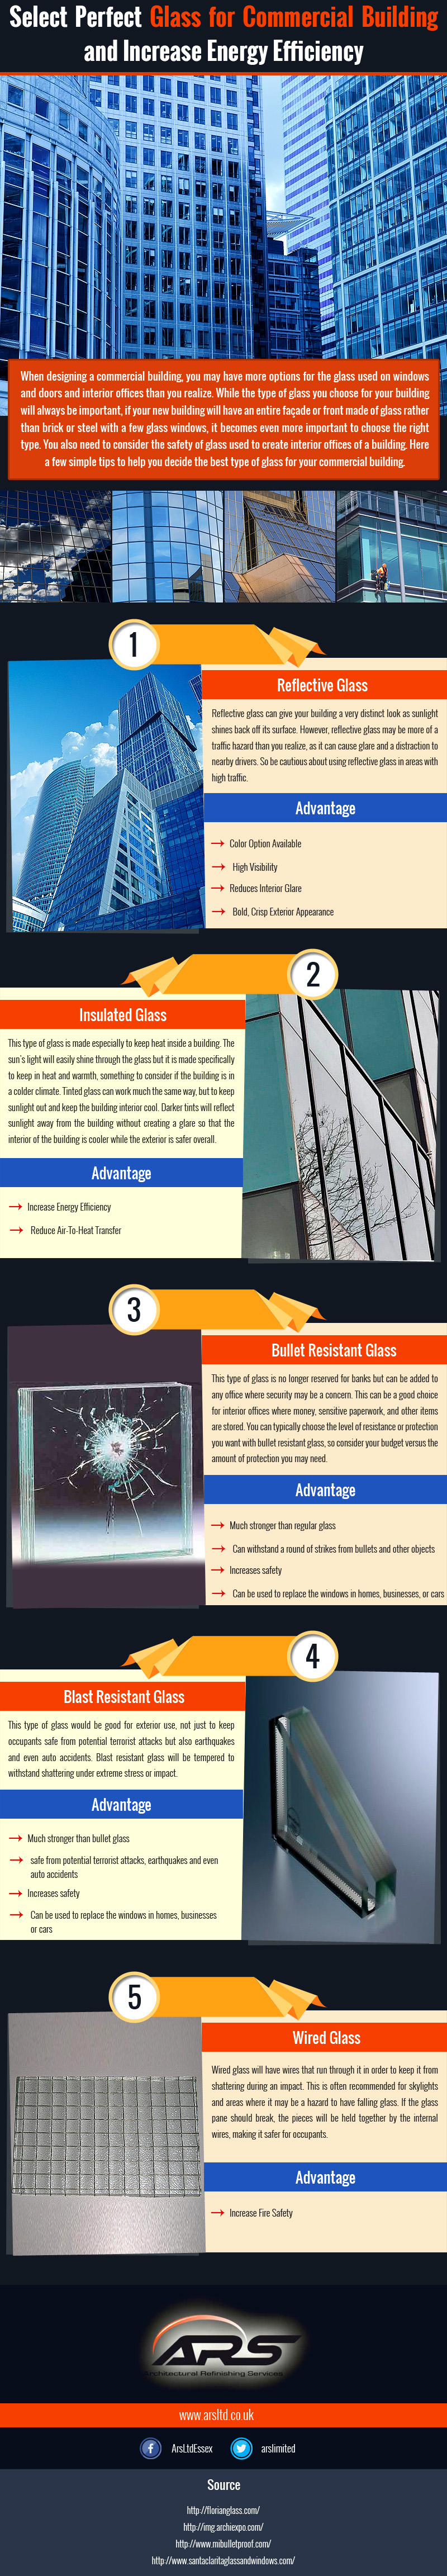 Perfect Glass for Commercial Buildings [Infographic]